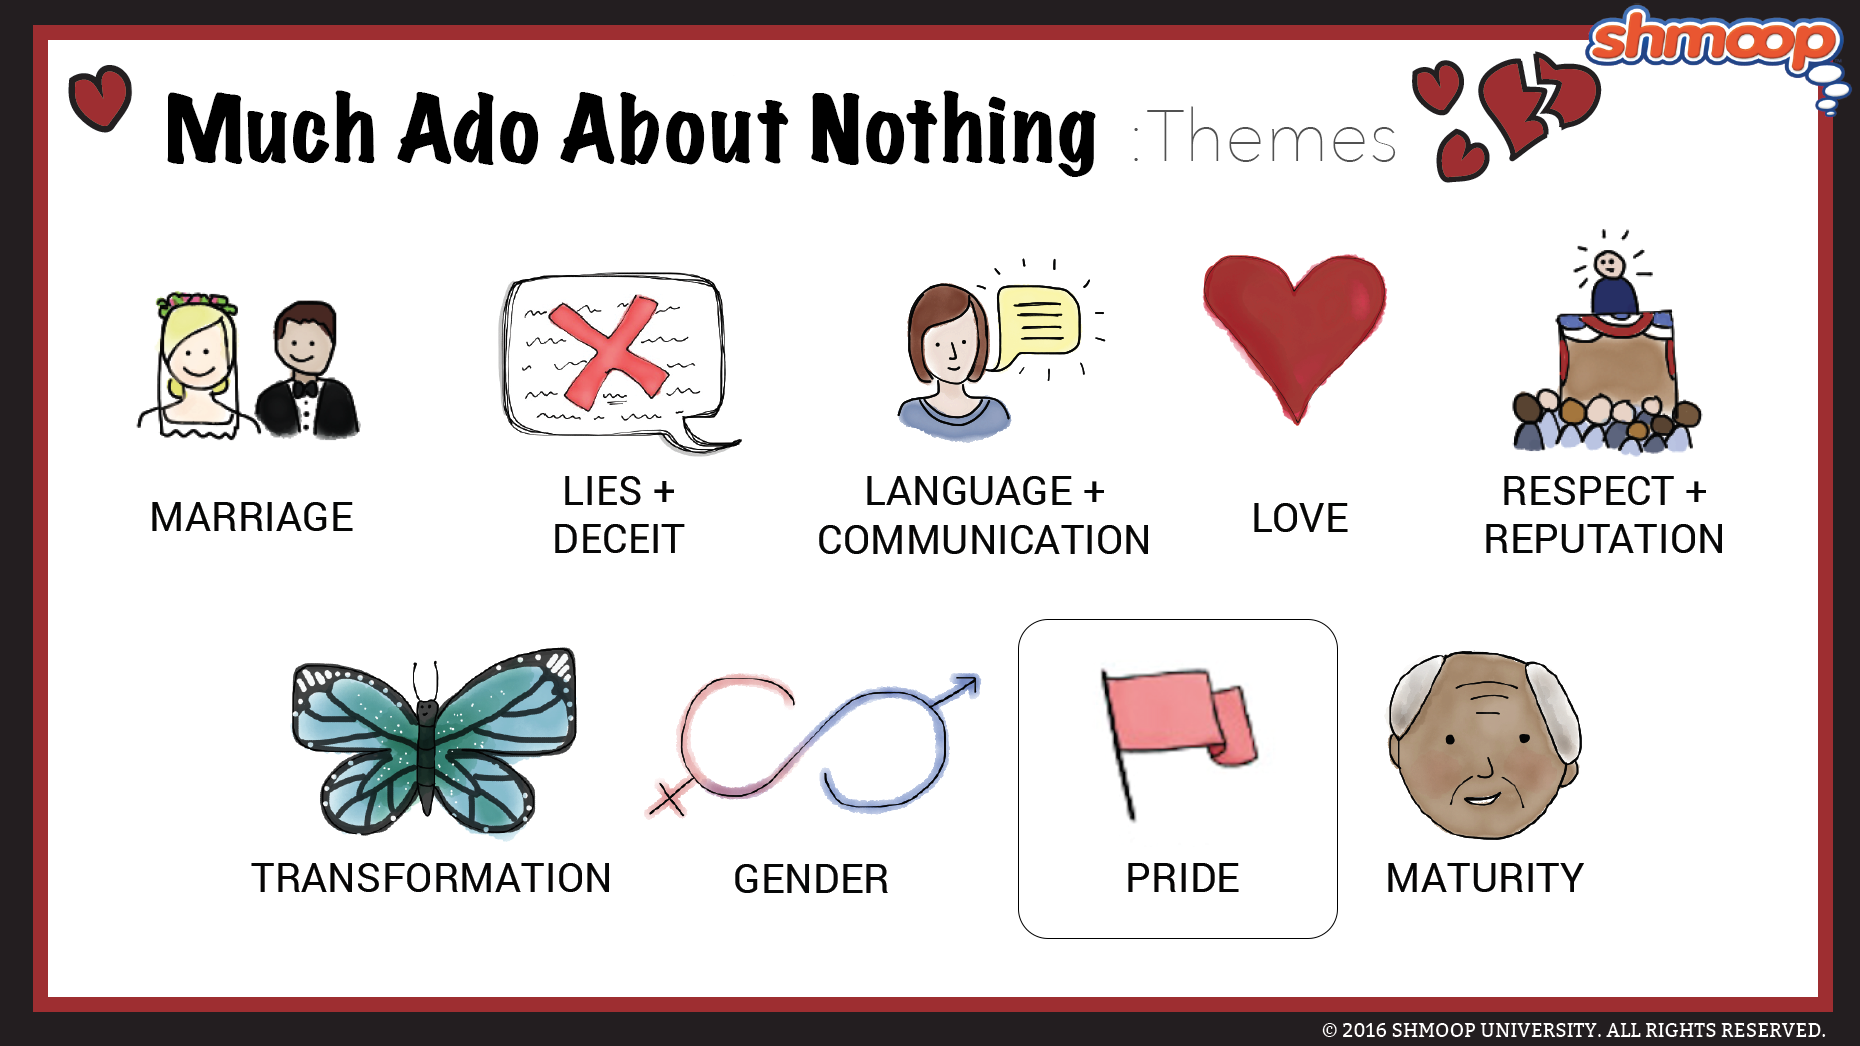 Much ado about nothing theme essay